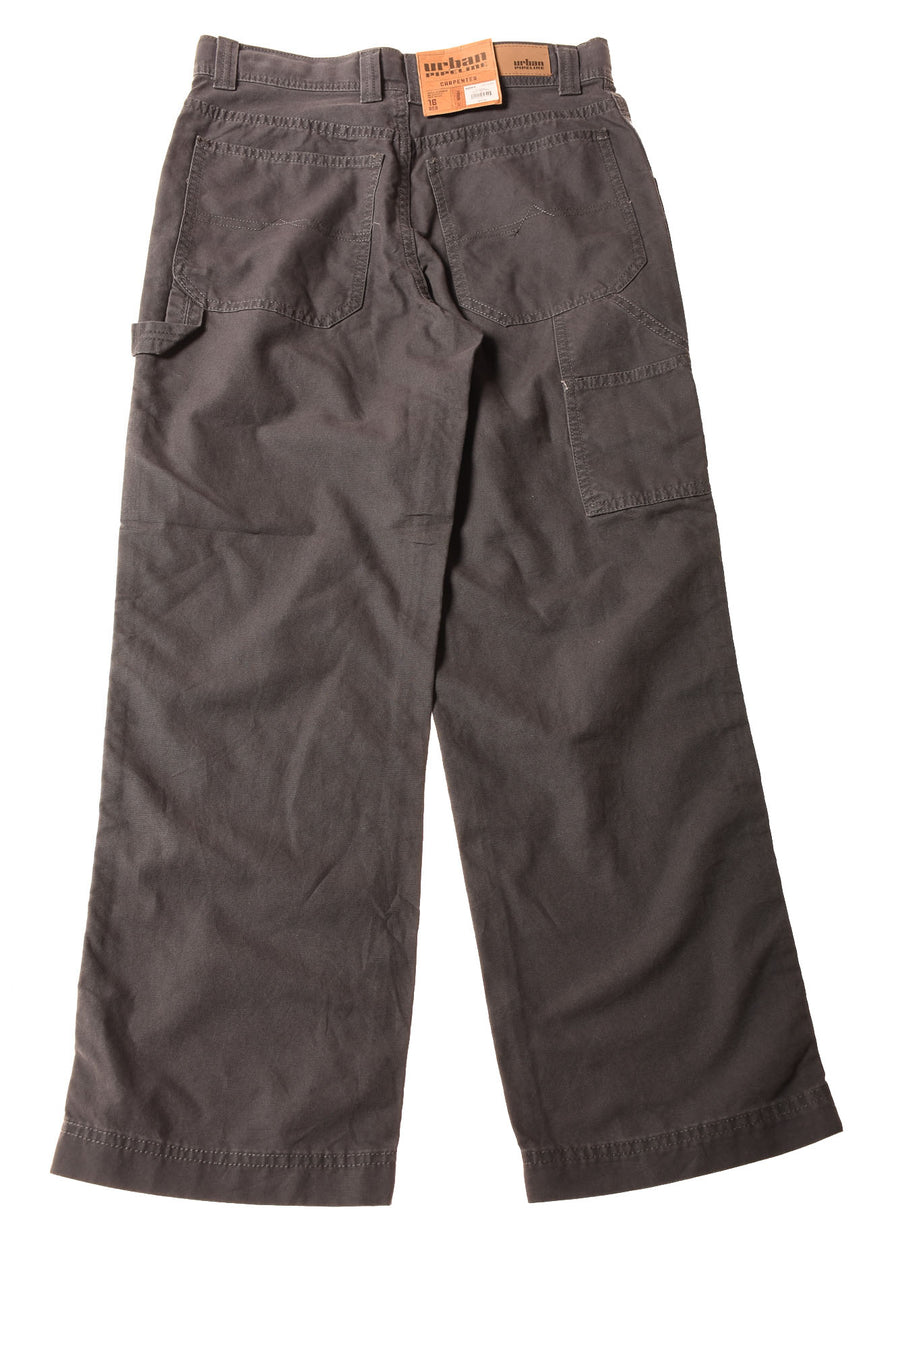 NEW Urban Pipeline Boy's Jeans  16 Gray